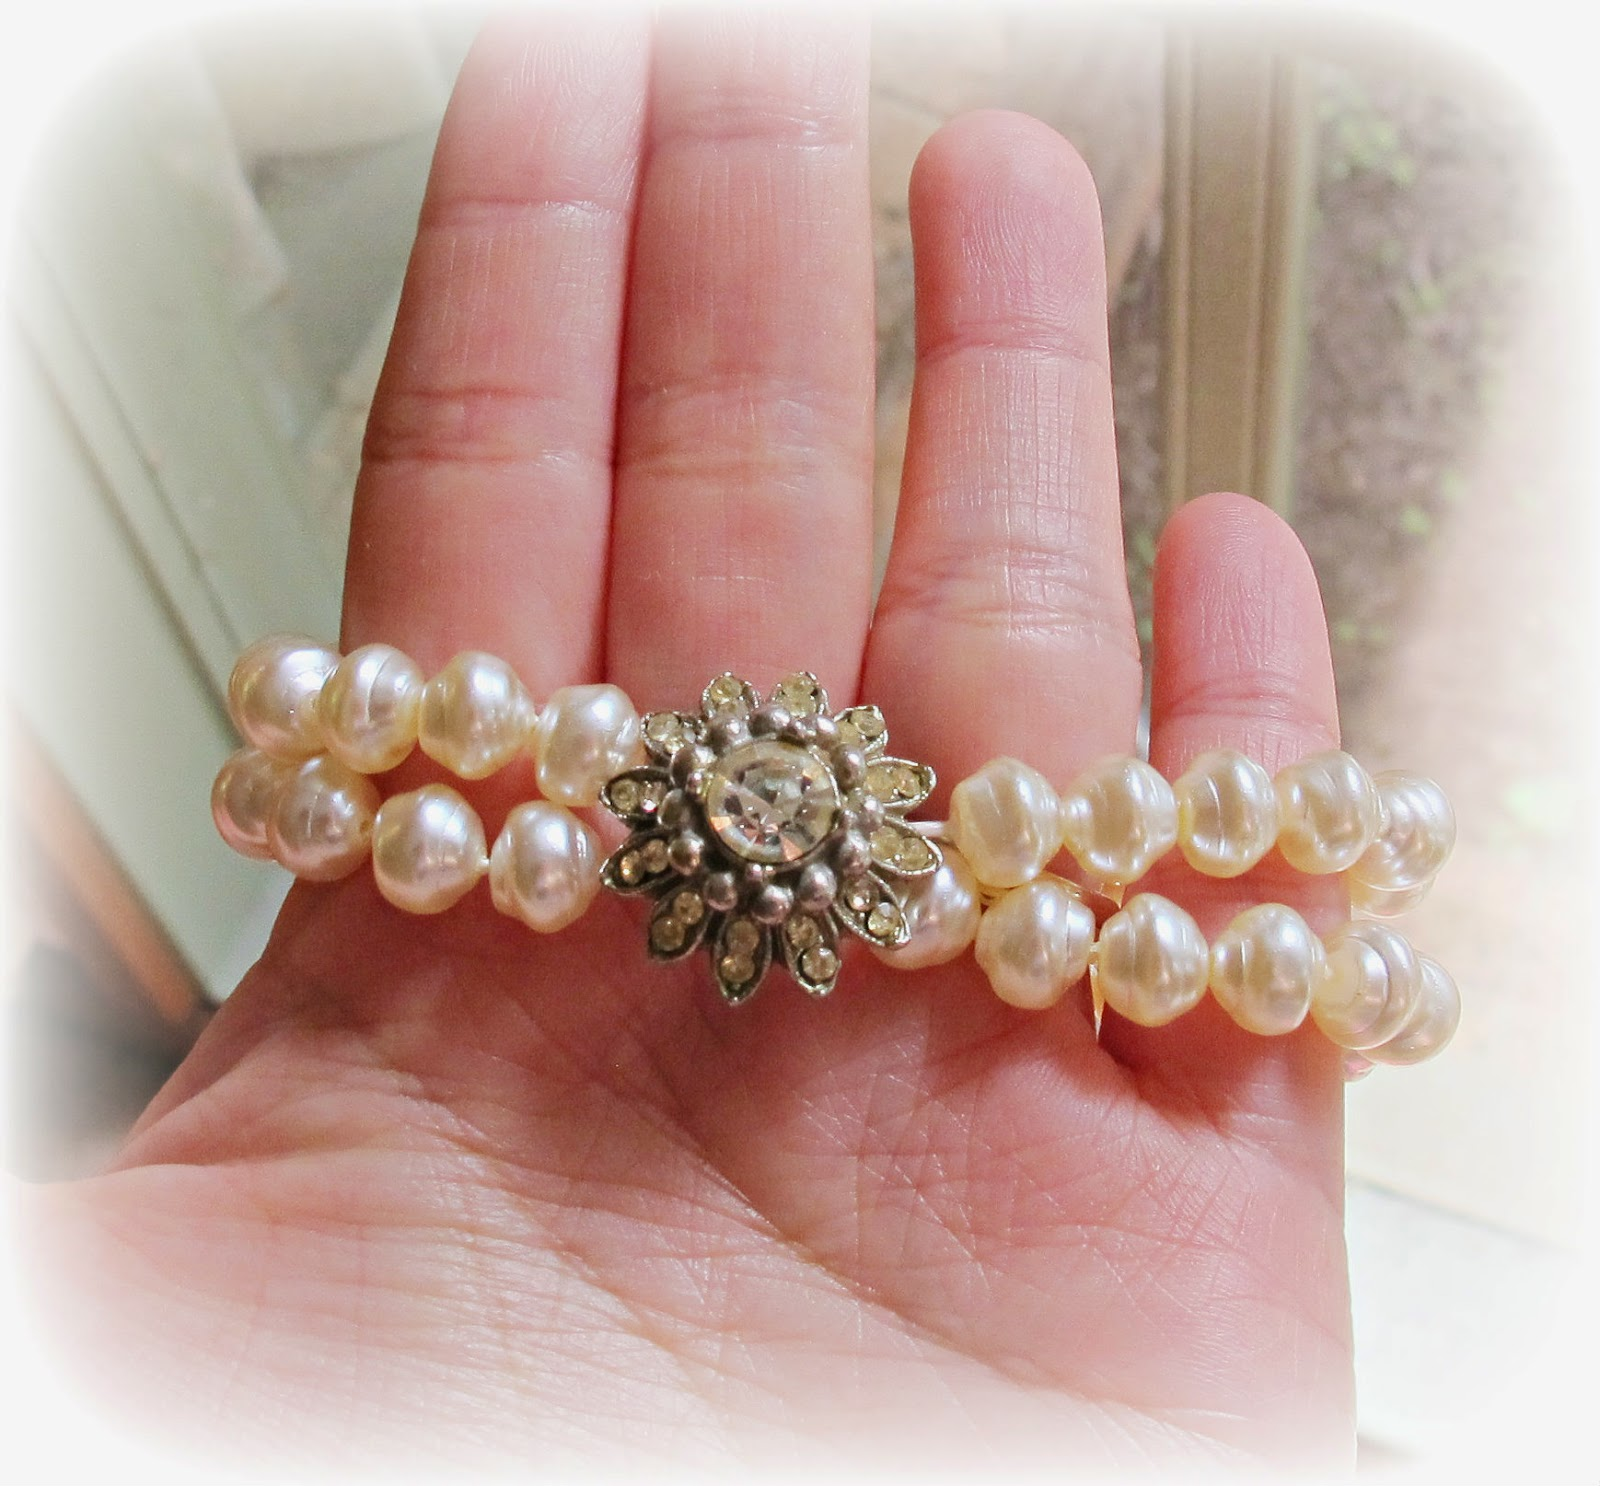 image wedding bracelet pearls baroque cream vintage rhinestone button stretch bracelet two cheeky monkeys